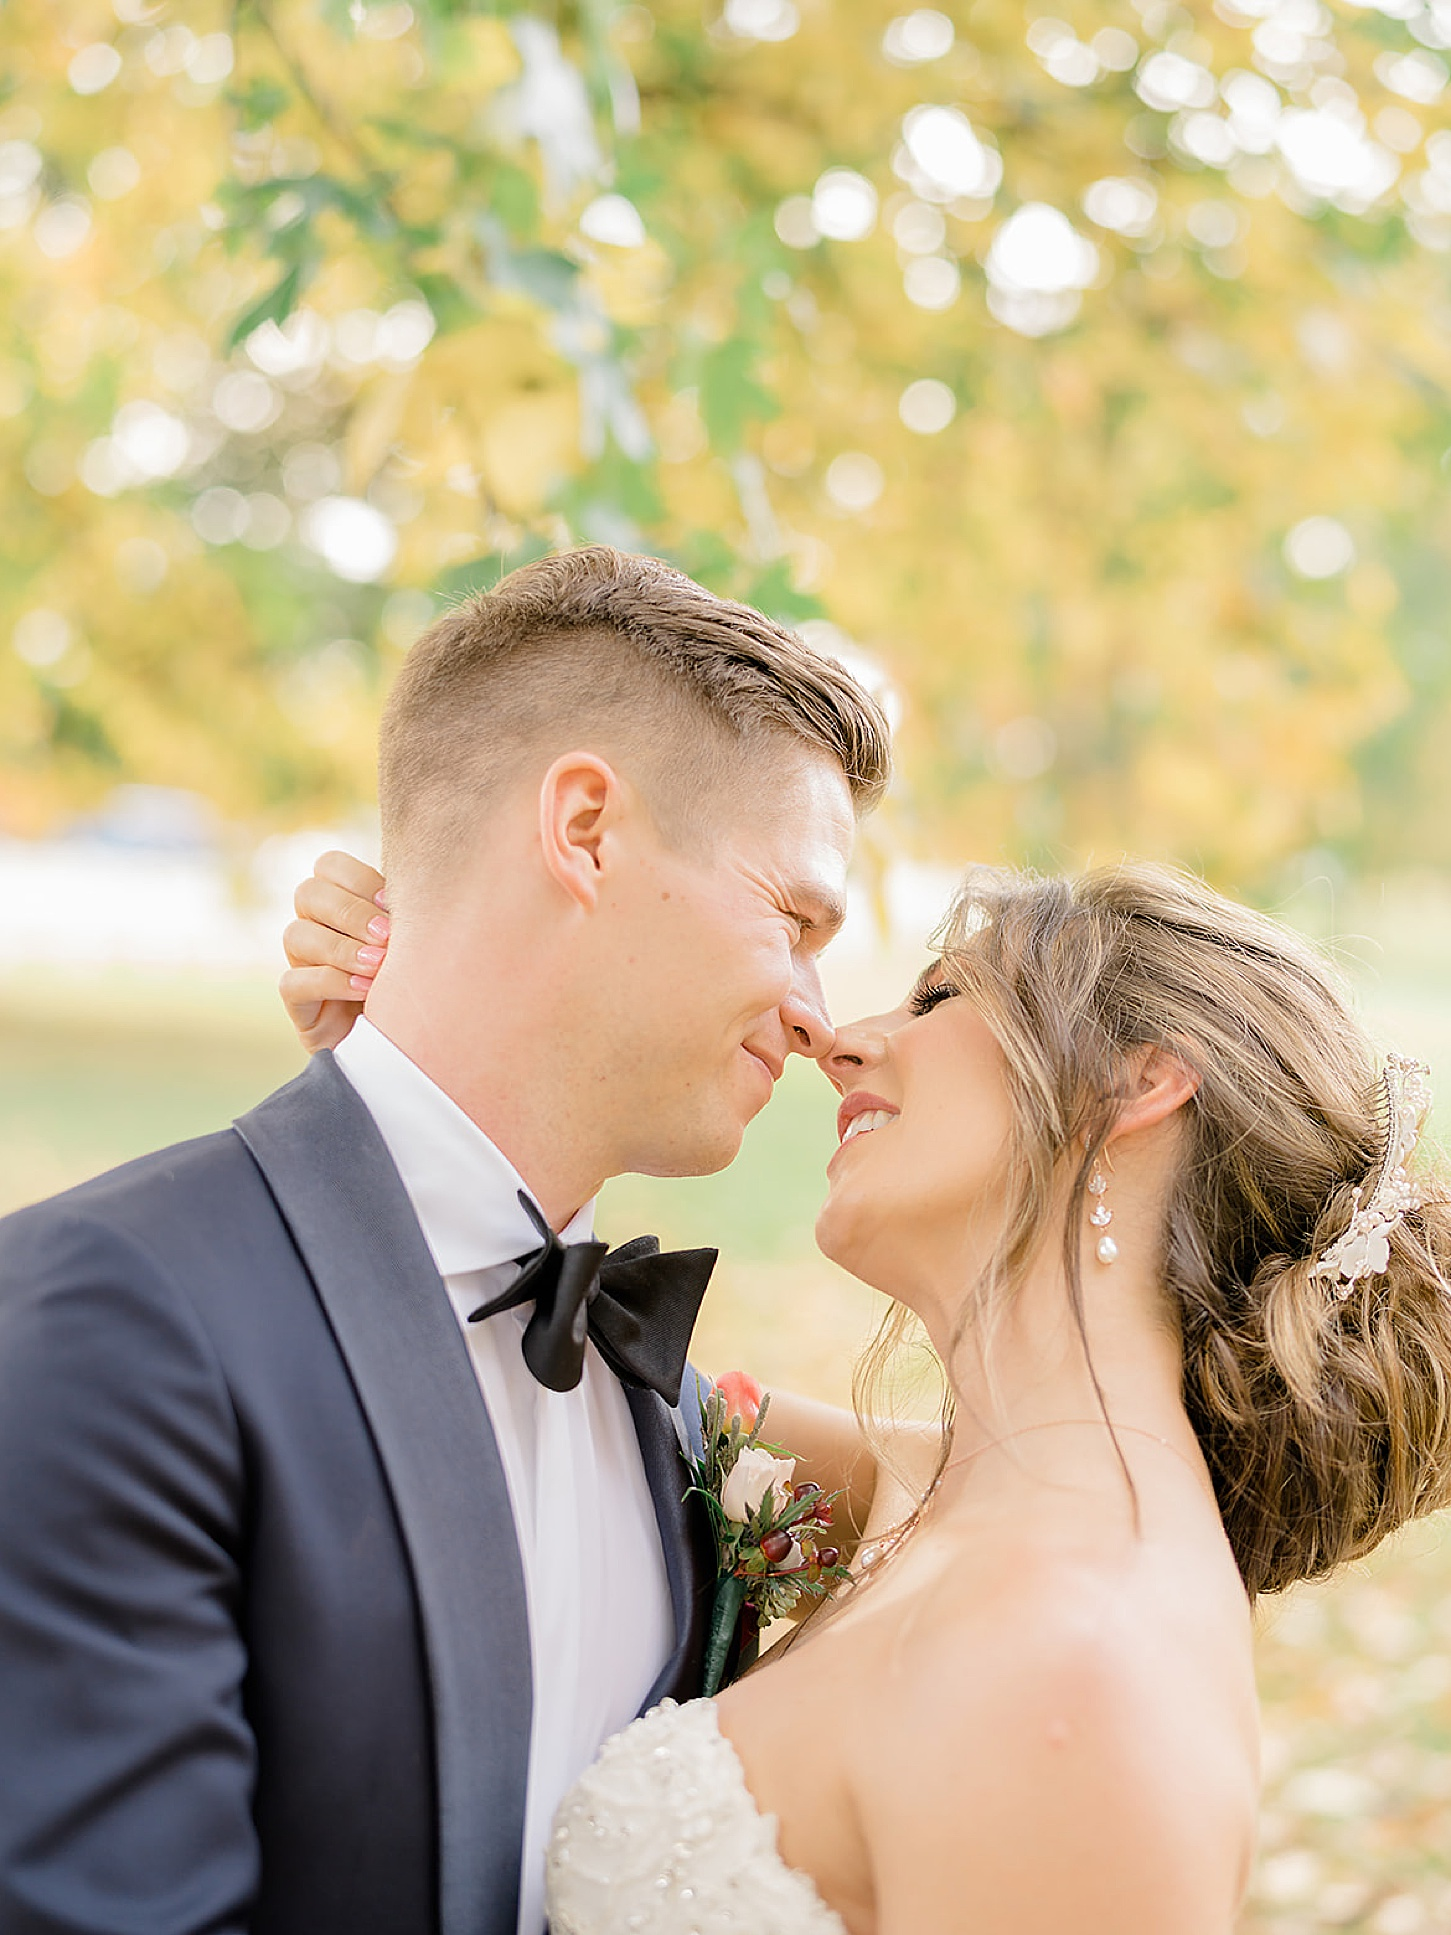 Tennessee Destination Wedding Photography by Magdalena Studios 0027